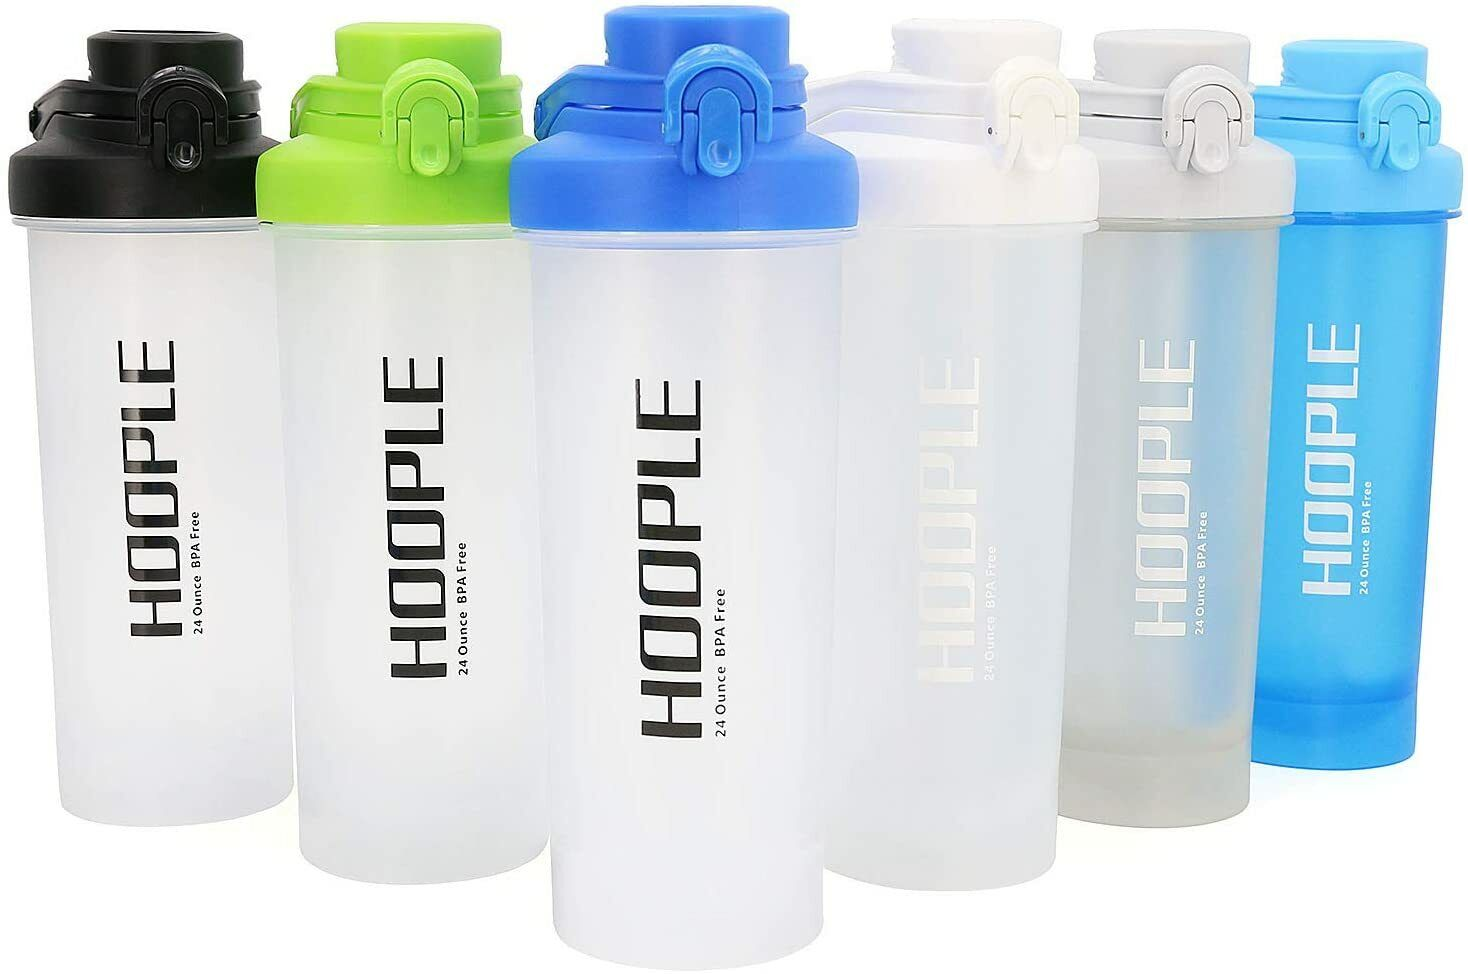 Protein Shaker Bottle Gym Sports Water Smoothie Mixer Cups Blending Ball 24 oz